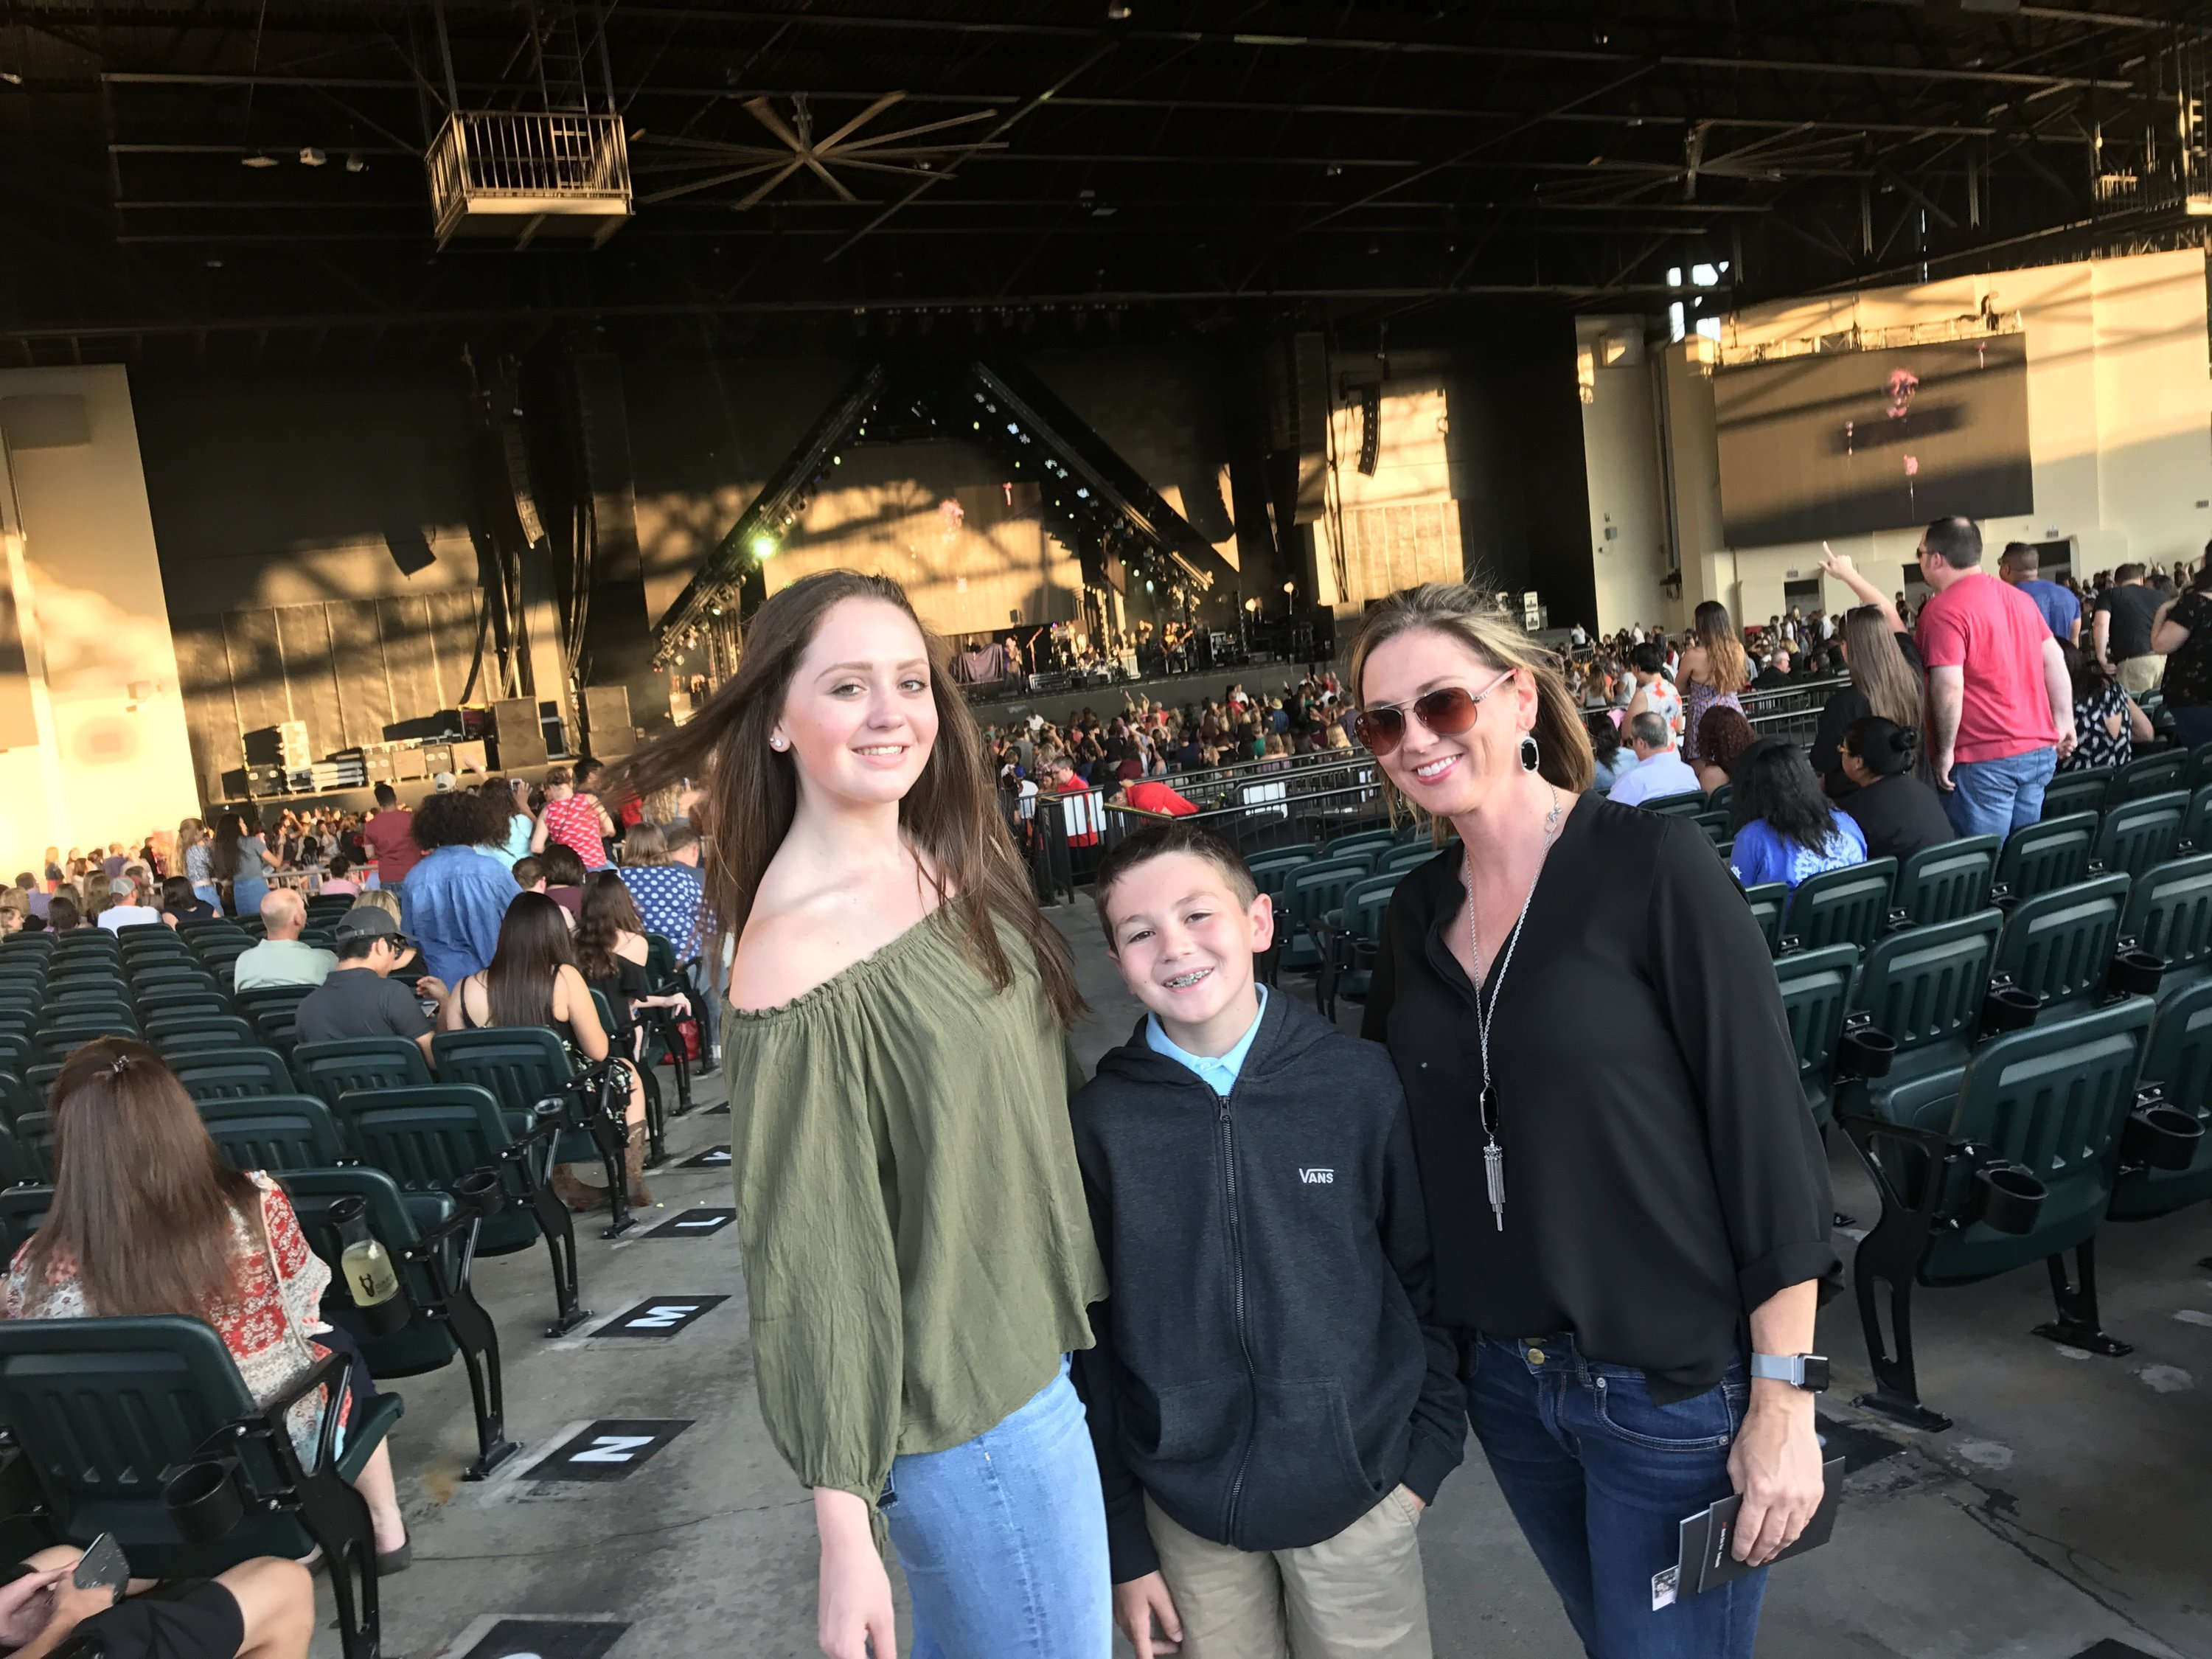 2017 Honda Civic Tour Featuring Onerepublic With Fitz & the Tantrums and  James Arthur Feedback!!